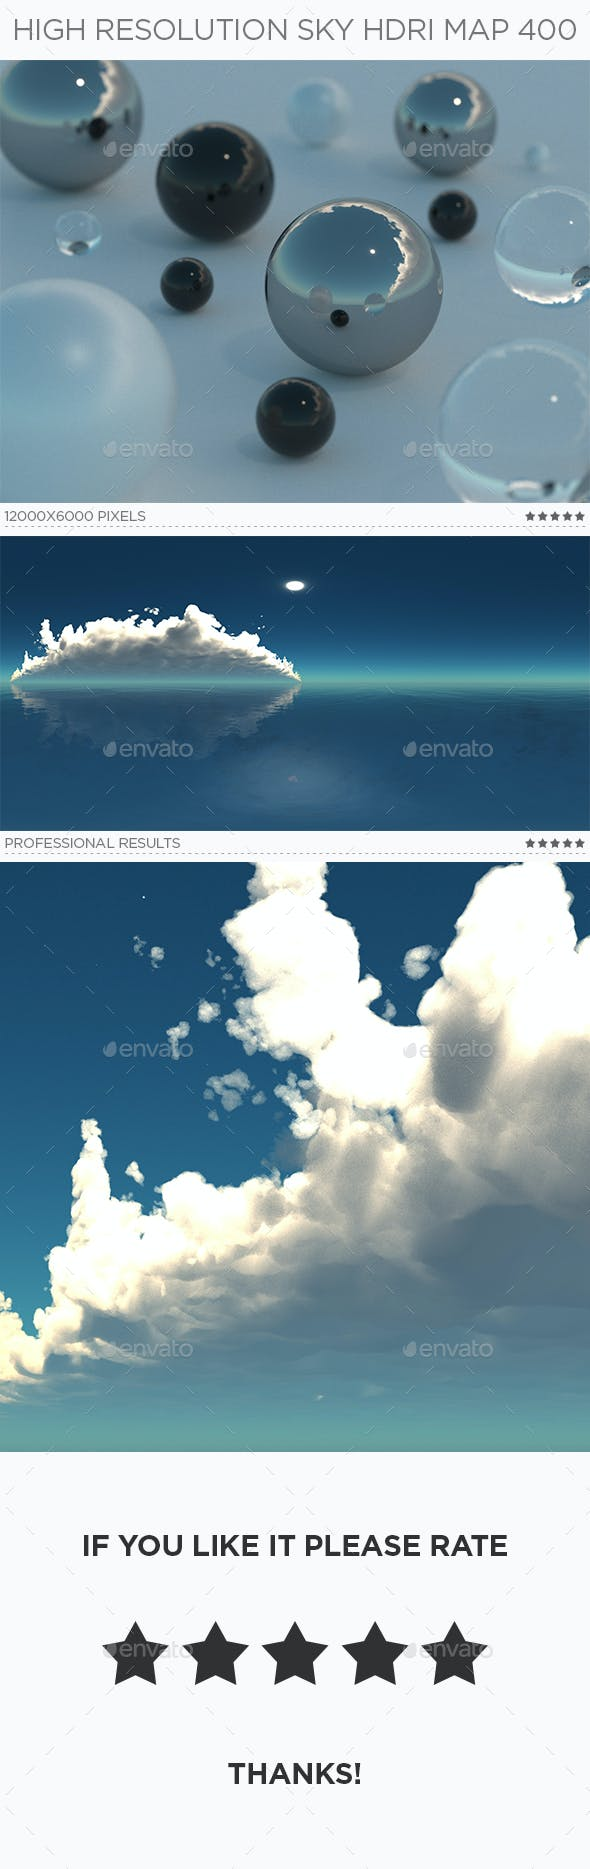 High Resolution Sky HDRi Map 400 - 3DOcean Item for Sale